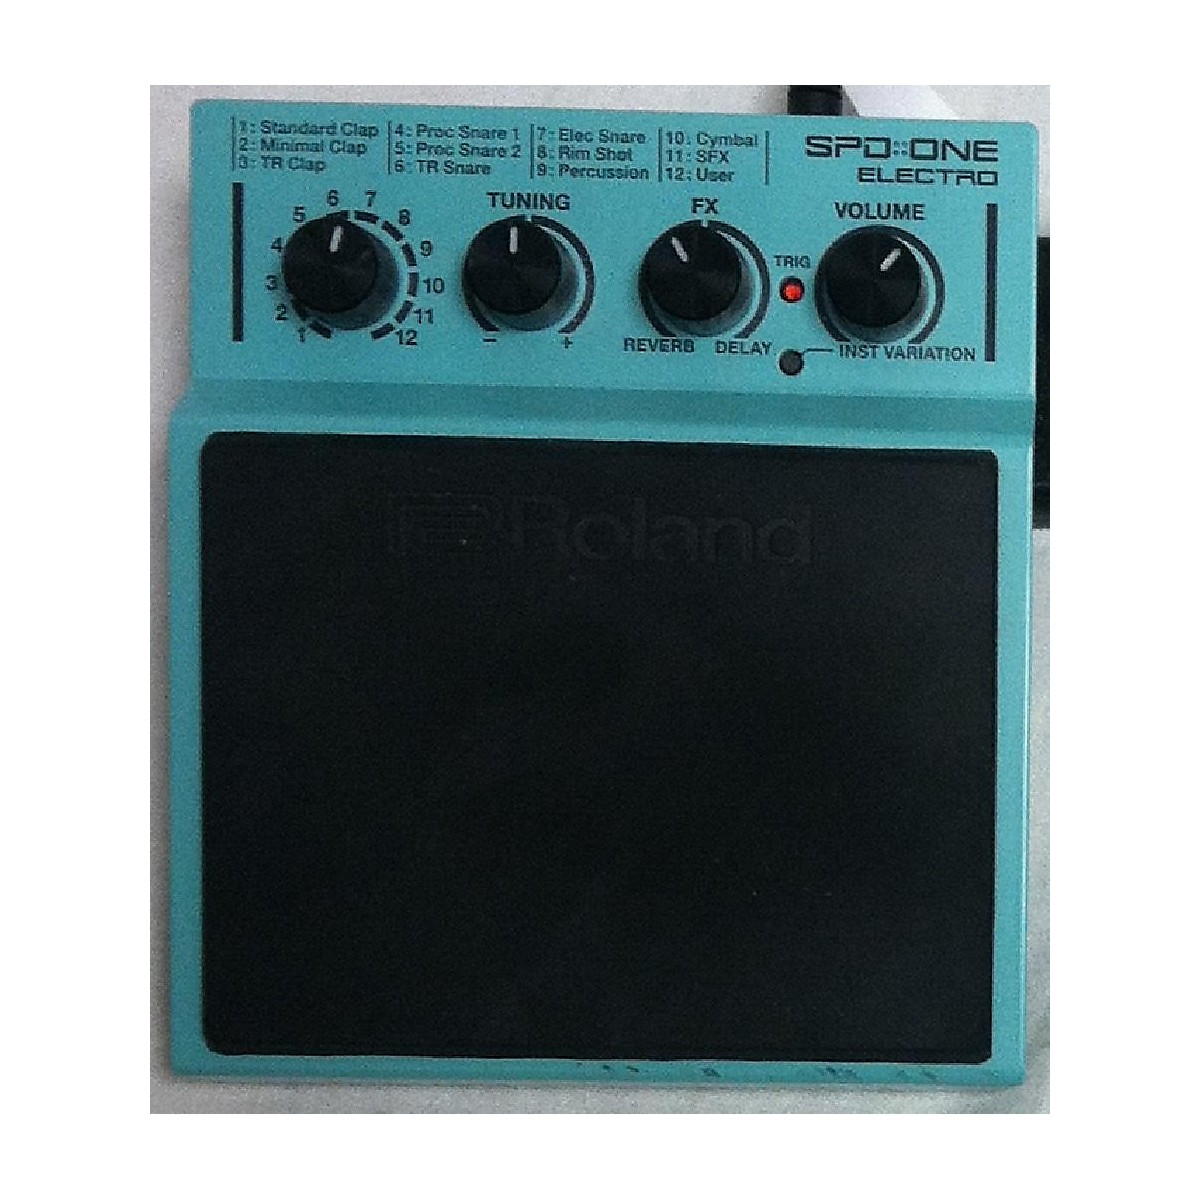 Roland SPD One Electro Trigger Pad